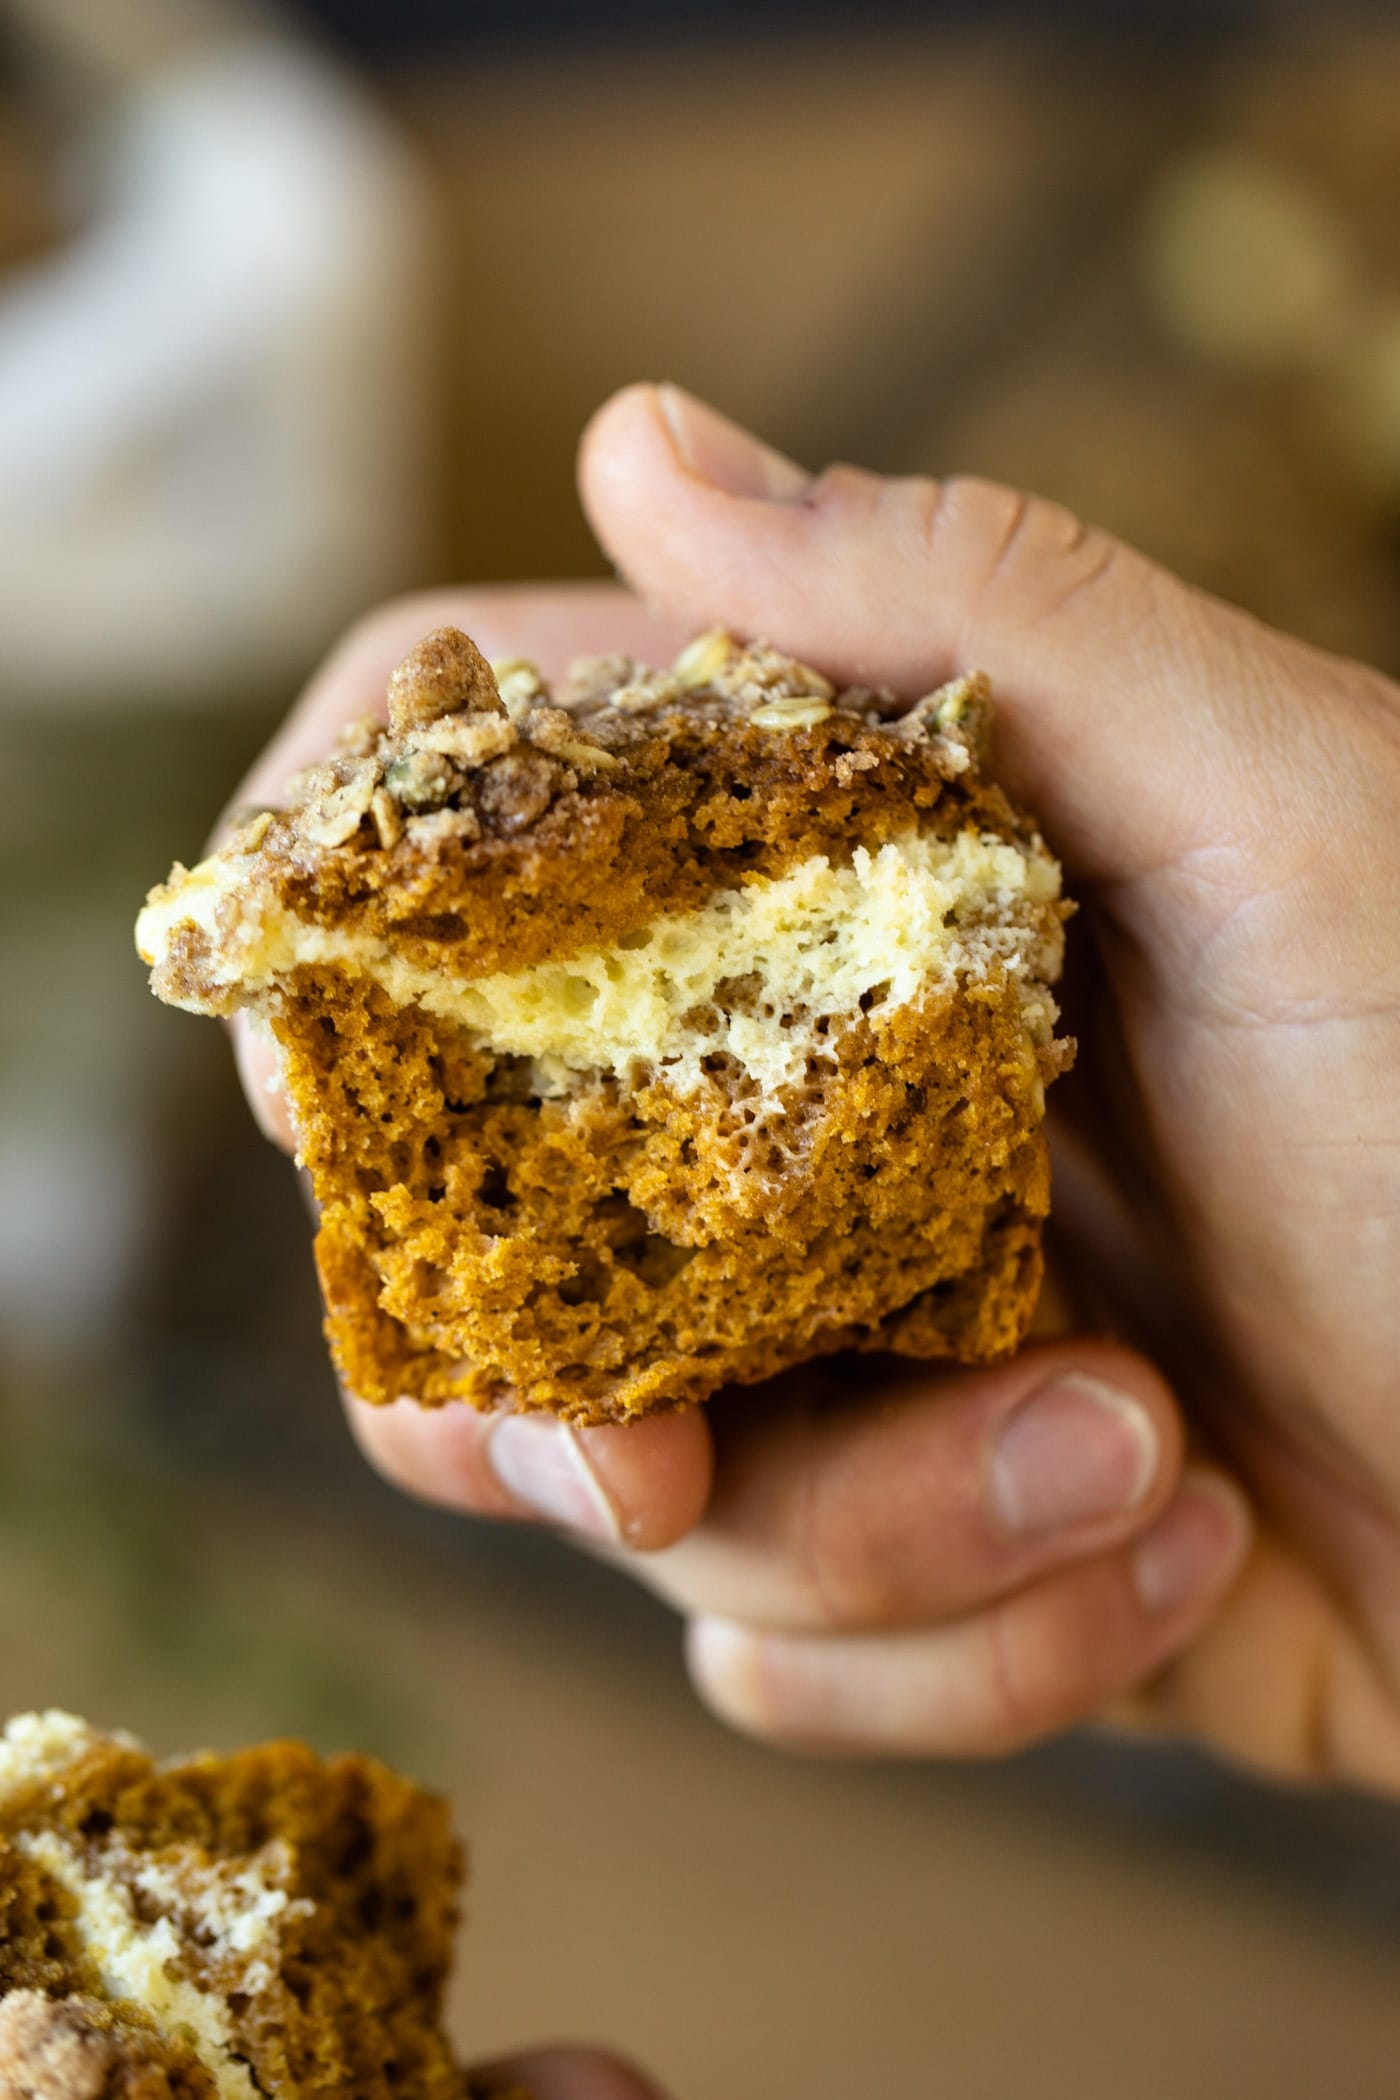 Pumpkin cheesecake muffins torn in half with cheesecake middle exposed held by hand with extra muffins and cooling rack in background